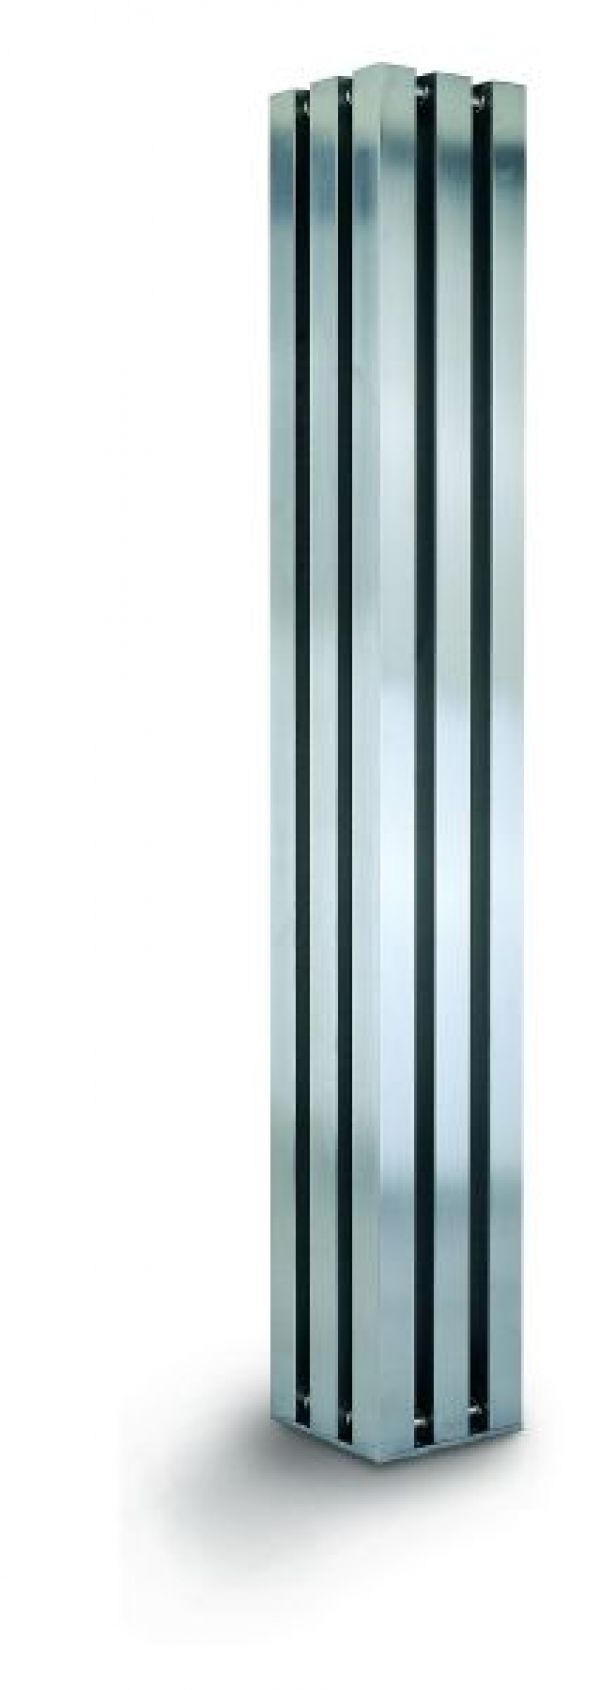 Radiateur contemporain loft for Radiateur contemporain